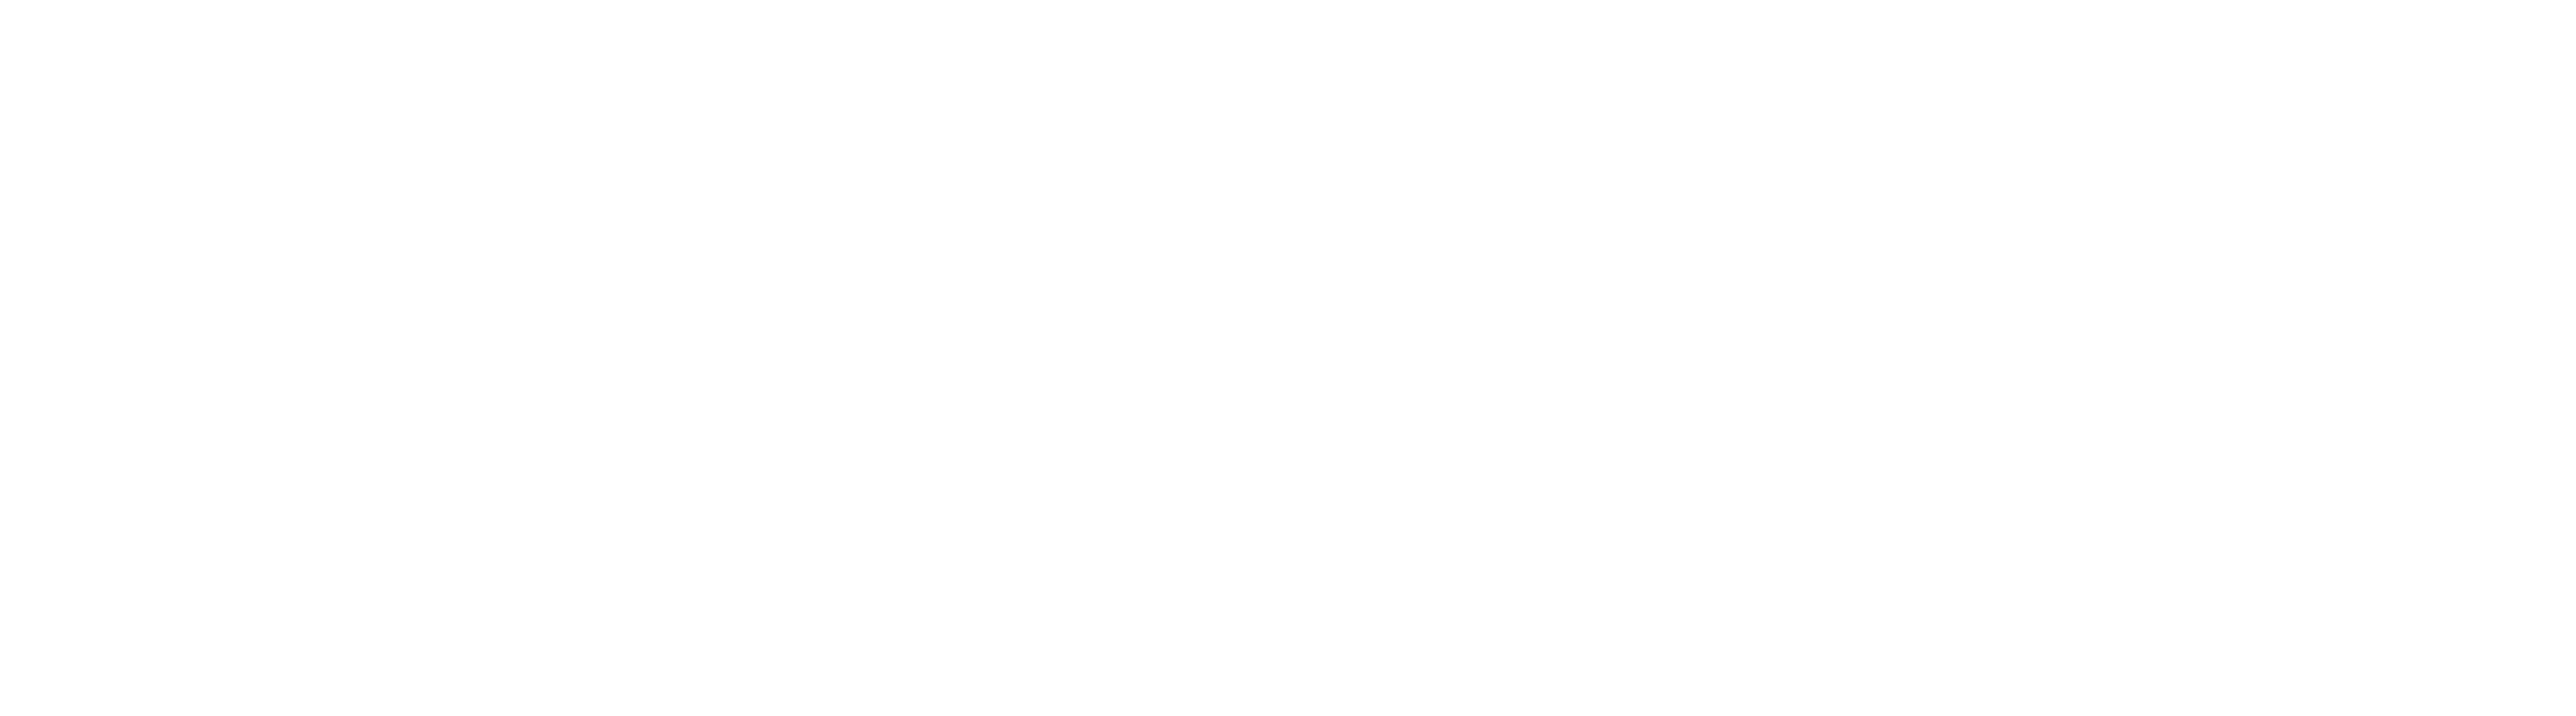 Optimum Biomedical Ltd